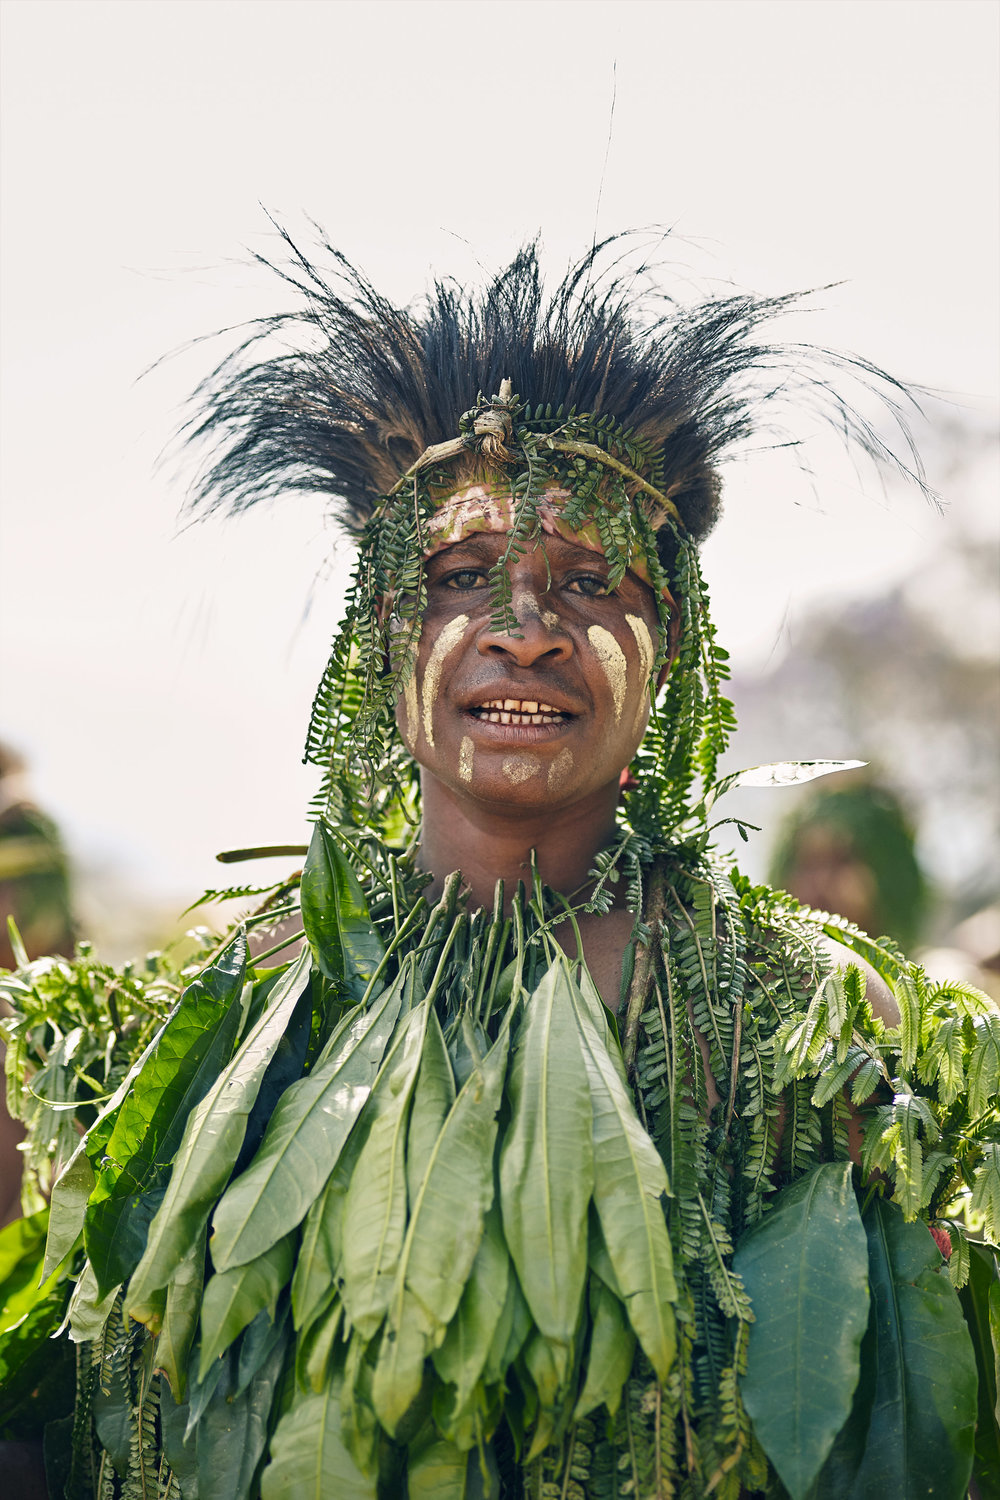 YONKI TRIBE WOMAN, PAPUA NEW GUINEA